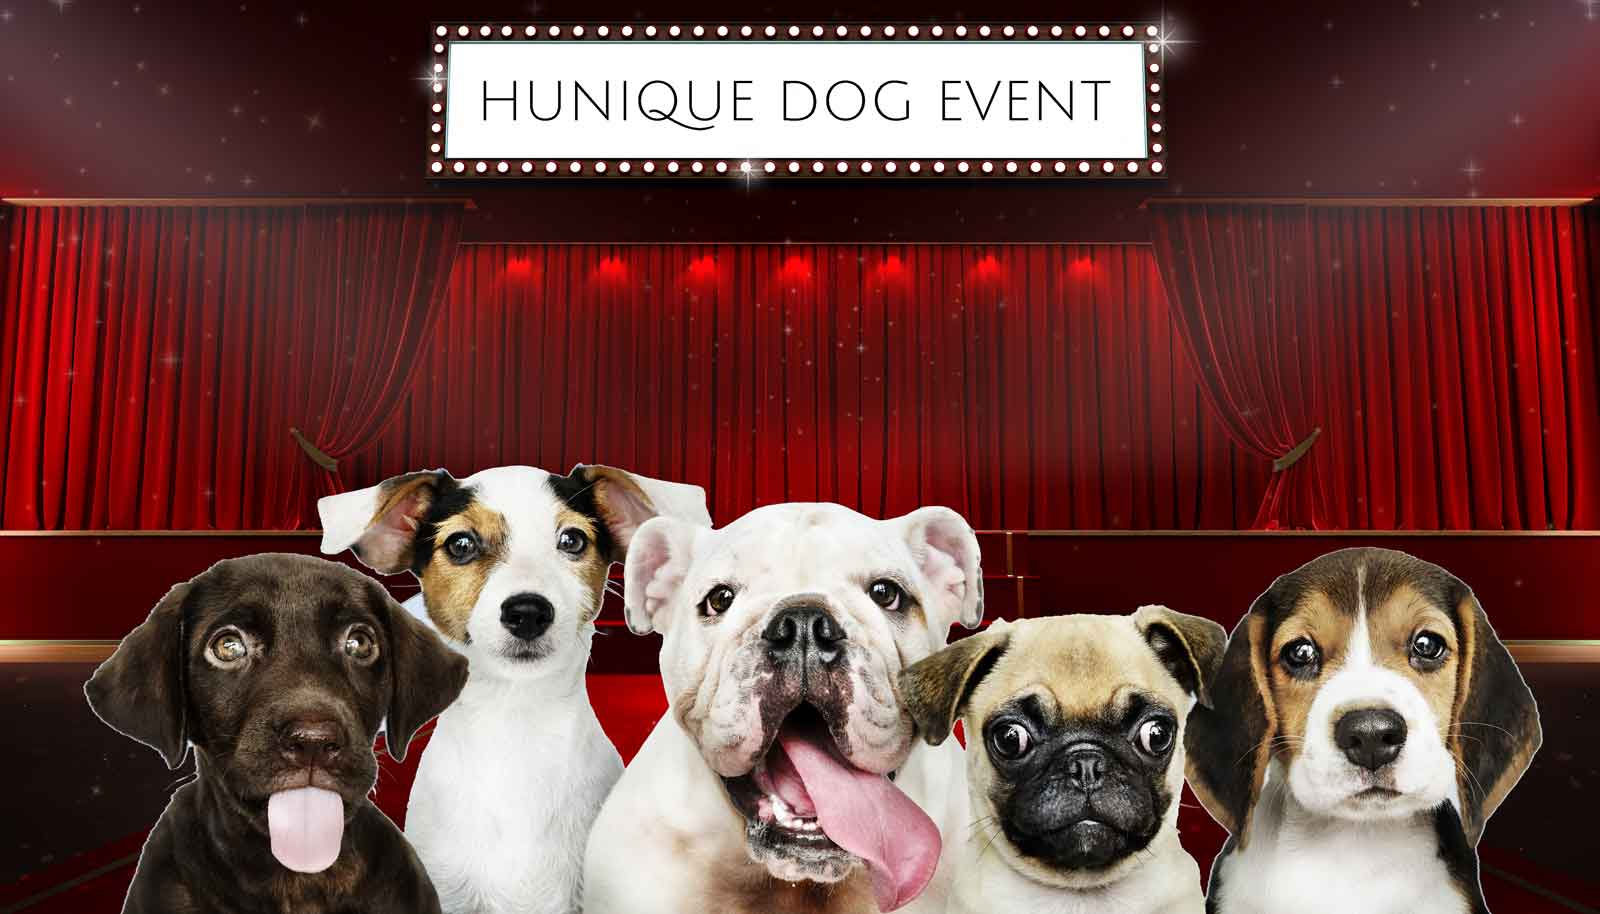 Hunique Dog Event 2019